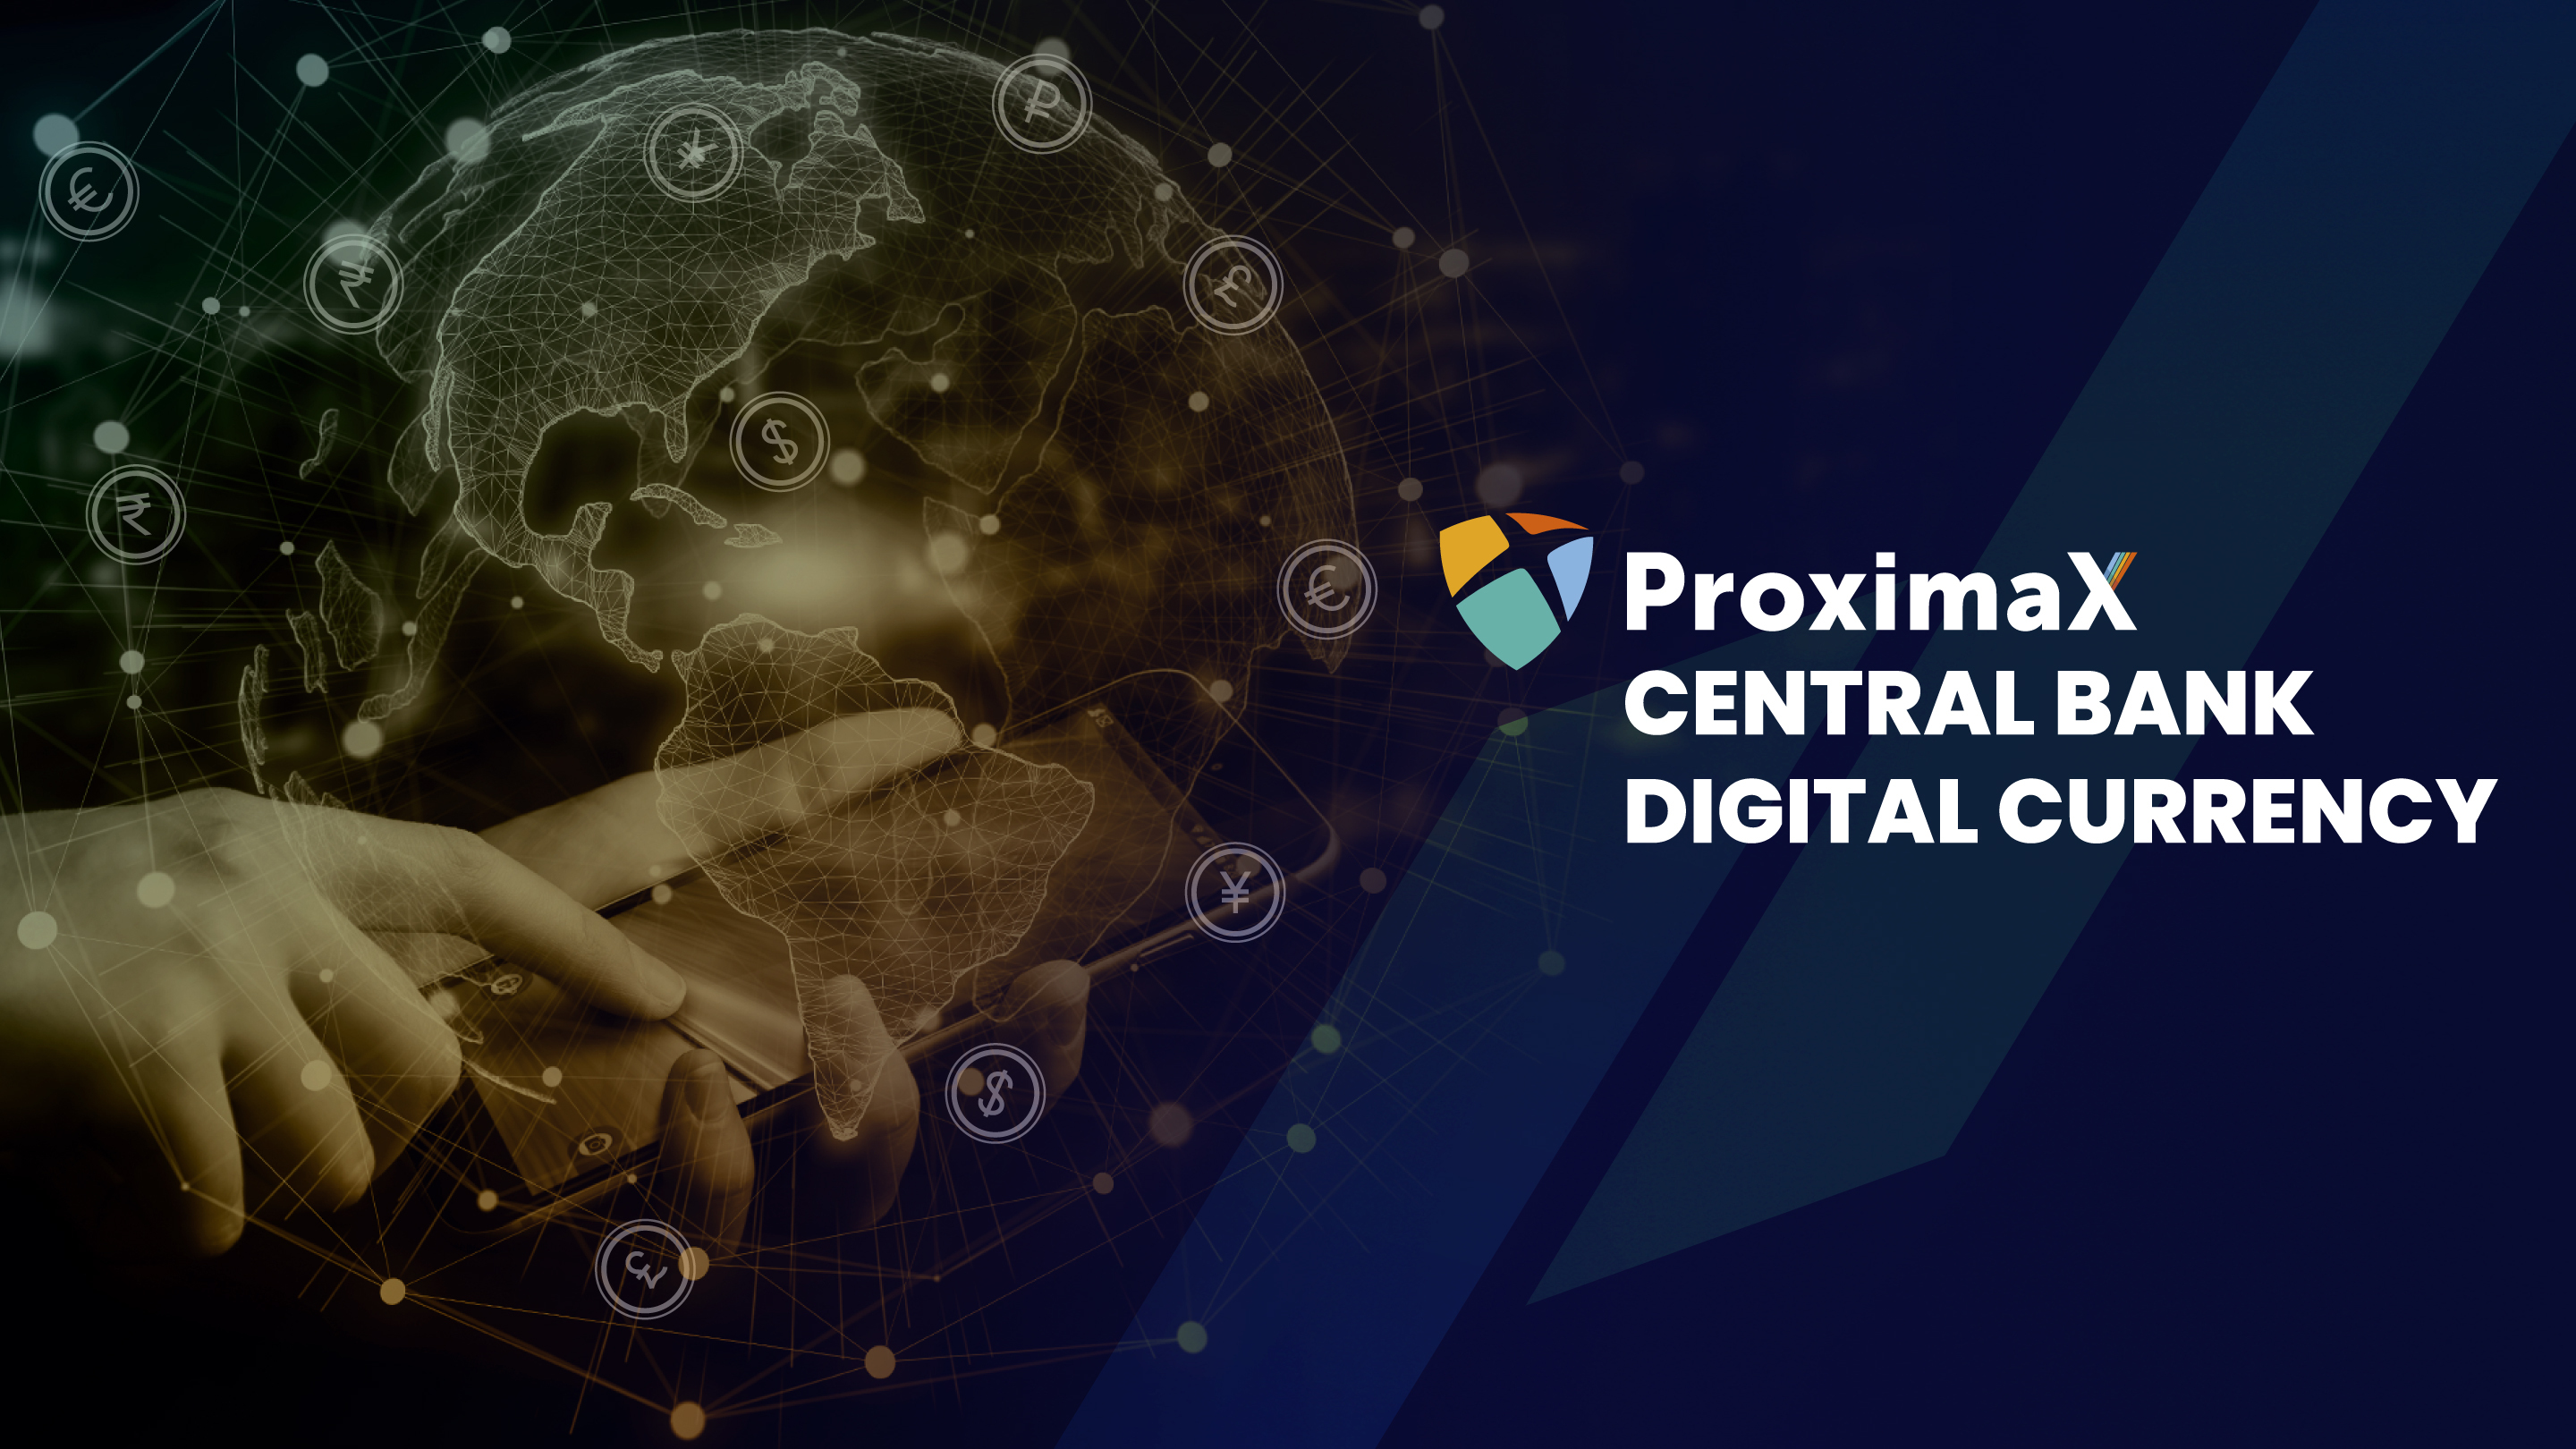 ProximaX Central Bank Digital Currency, a Holistic Solution